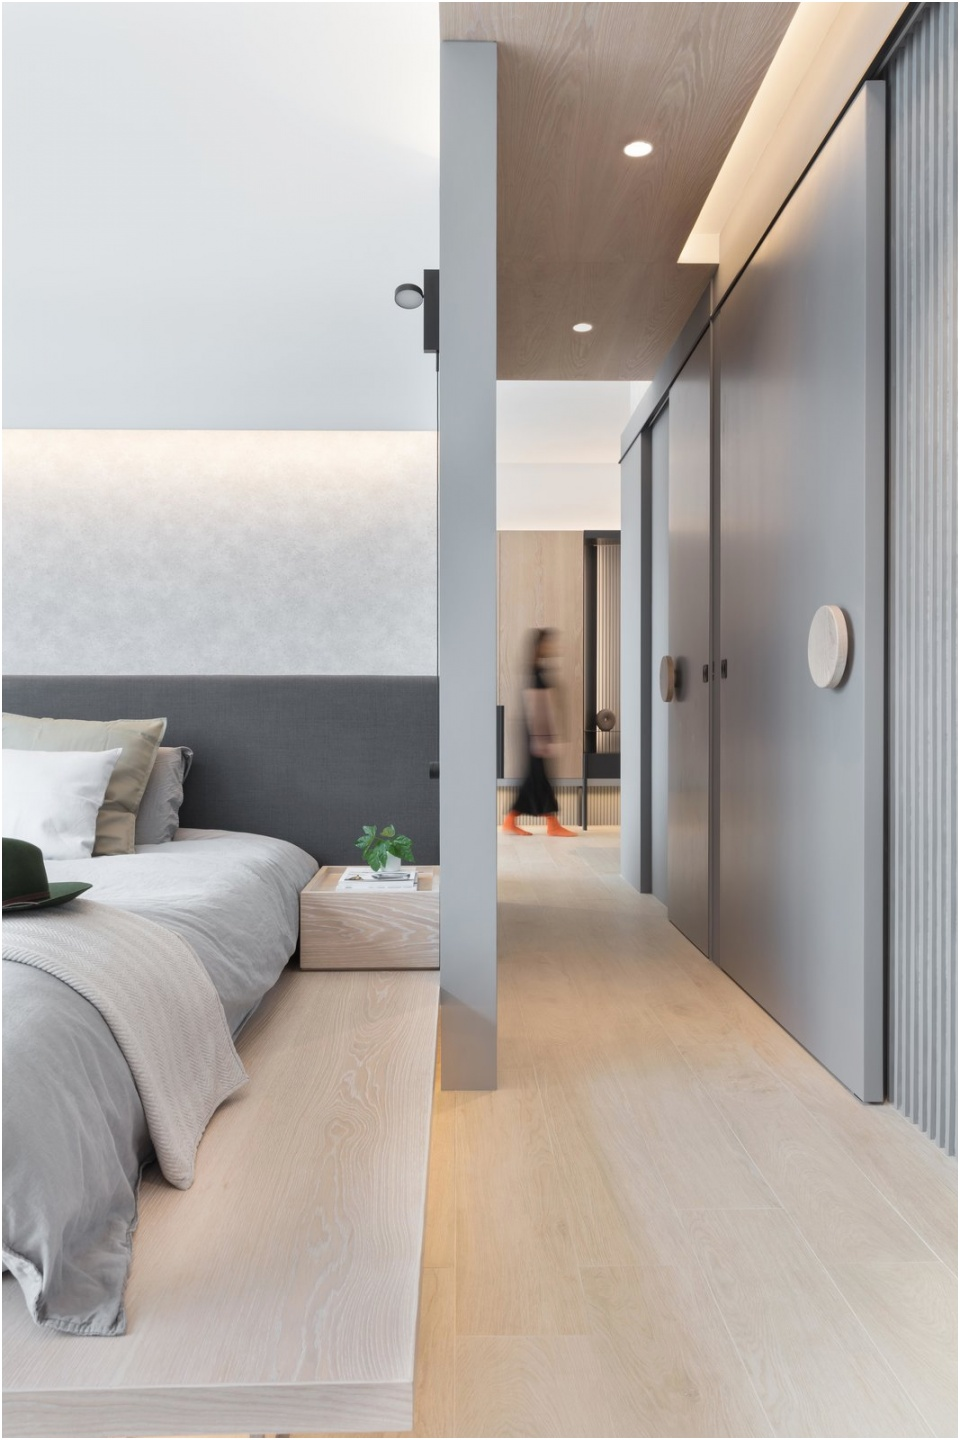 the bedroom and corridor at the southern side of hong kong we have recently designed an apartment facing the aberdeen harbour with a beautiful mountain view the apartment is designed to lengthen the horizontal experience with long timber cabinet wall and